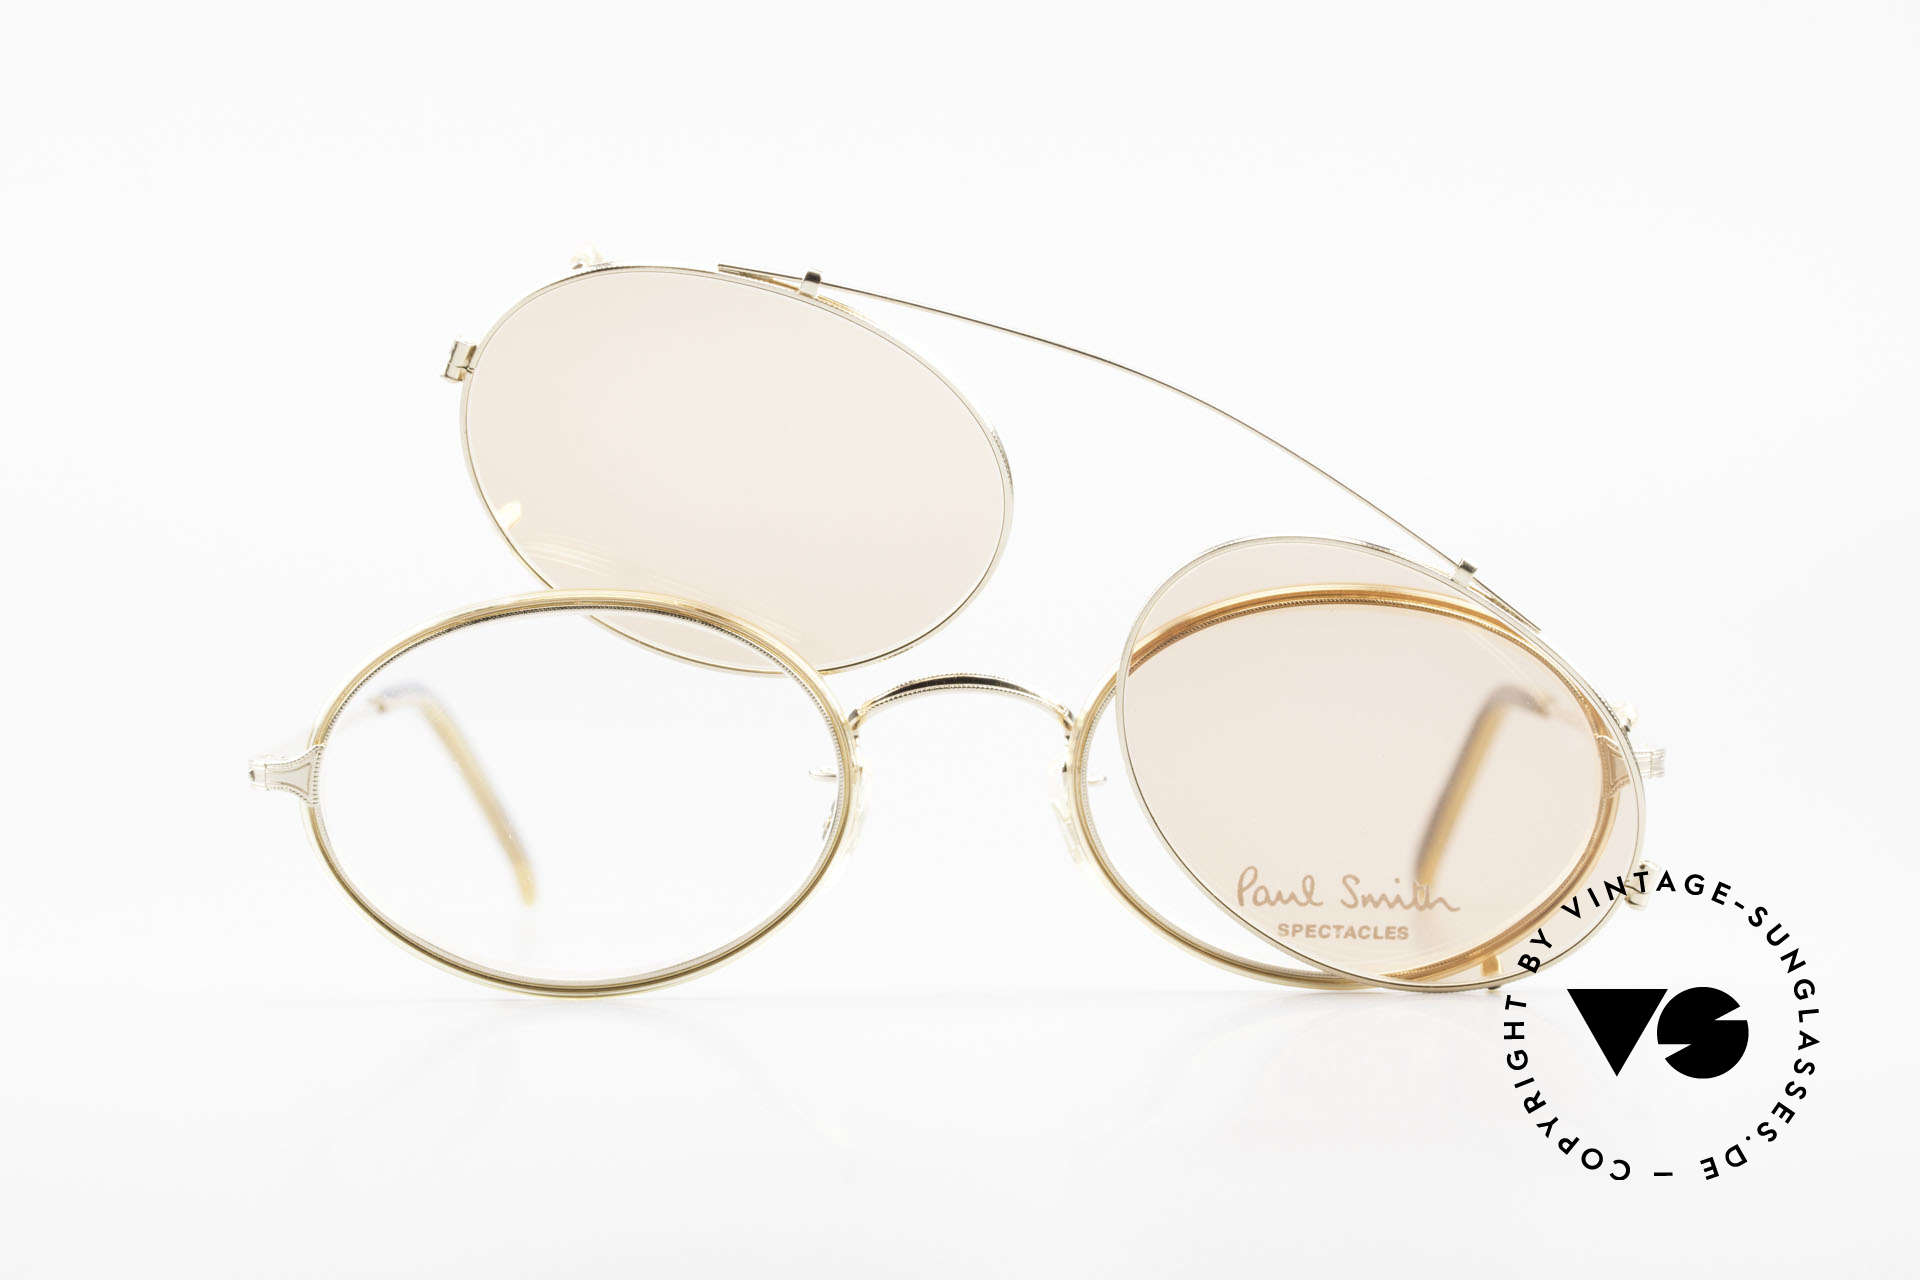 Paul Smith PSR108 Oval Vintage Frame With Clip, NO RETRO eyewear FASHION, but a unique old RARITY!, Made for Men and Women